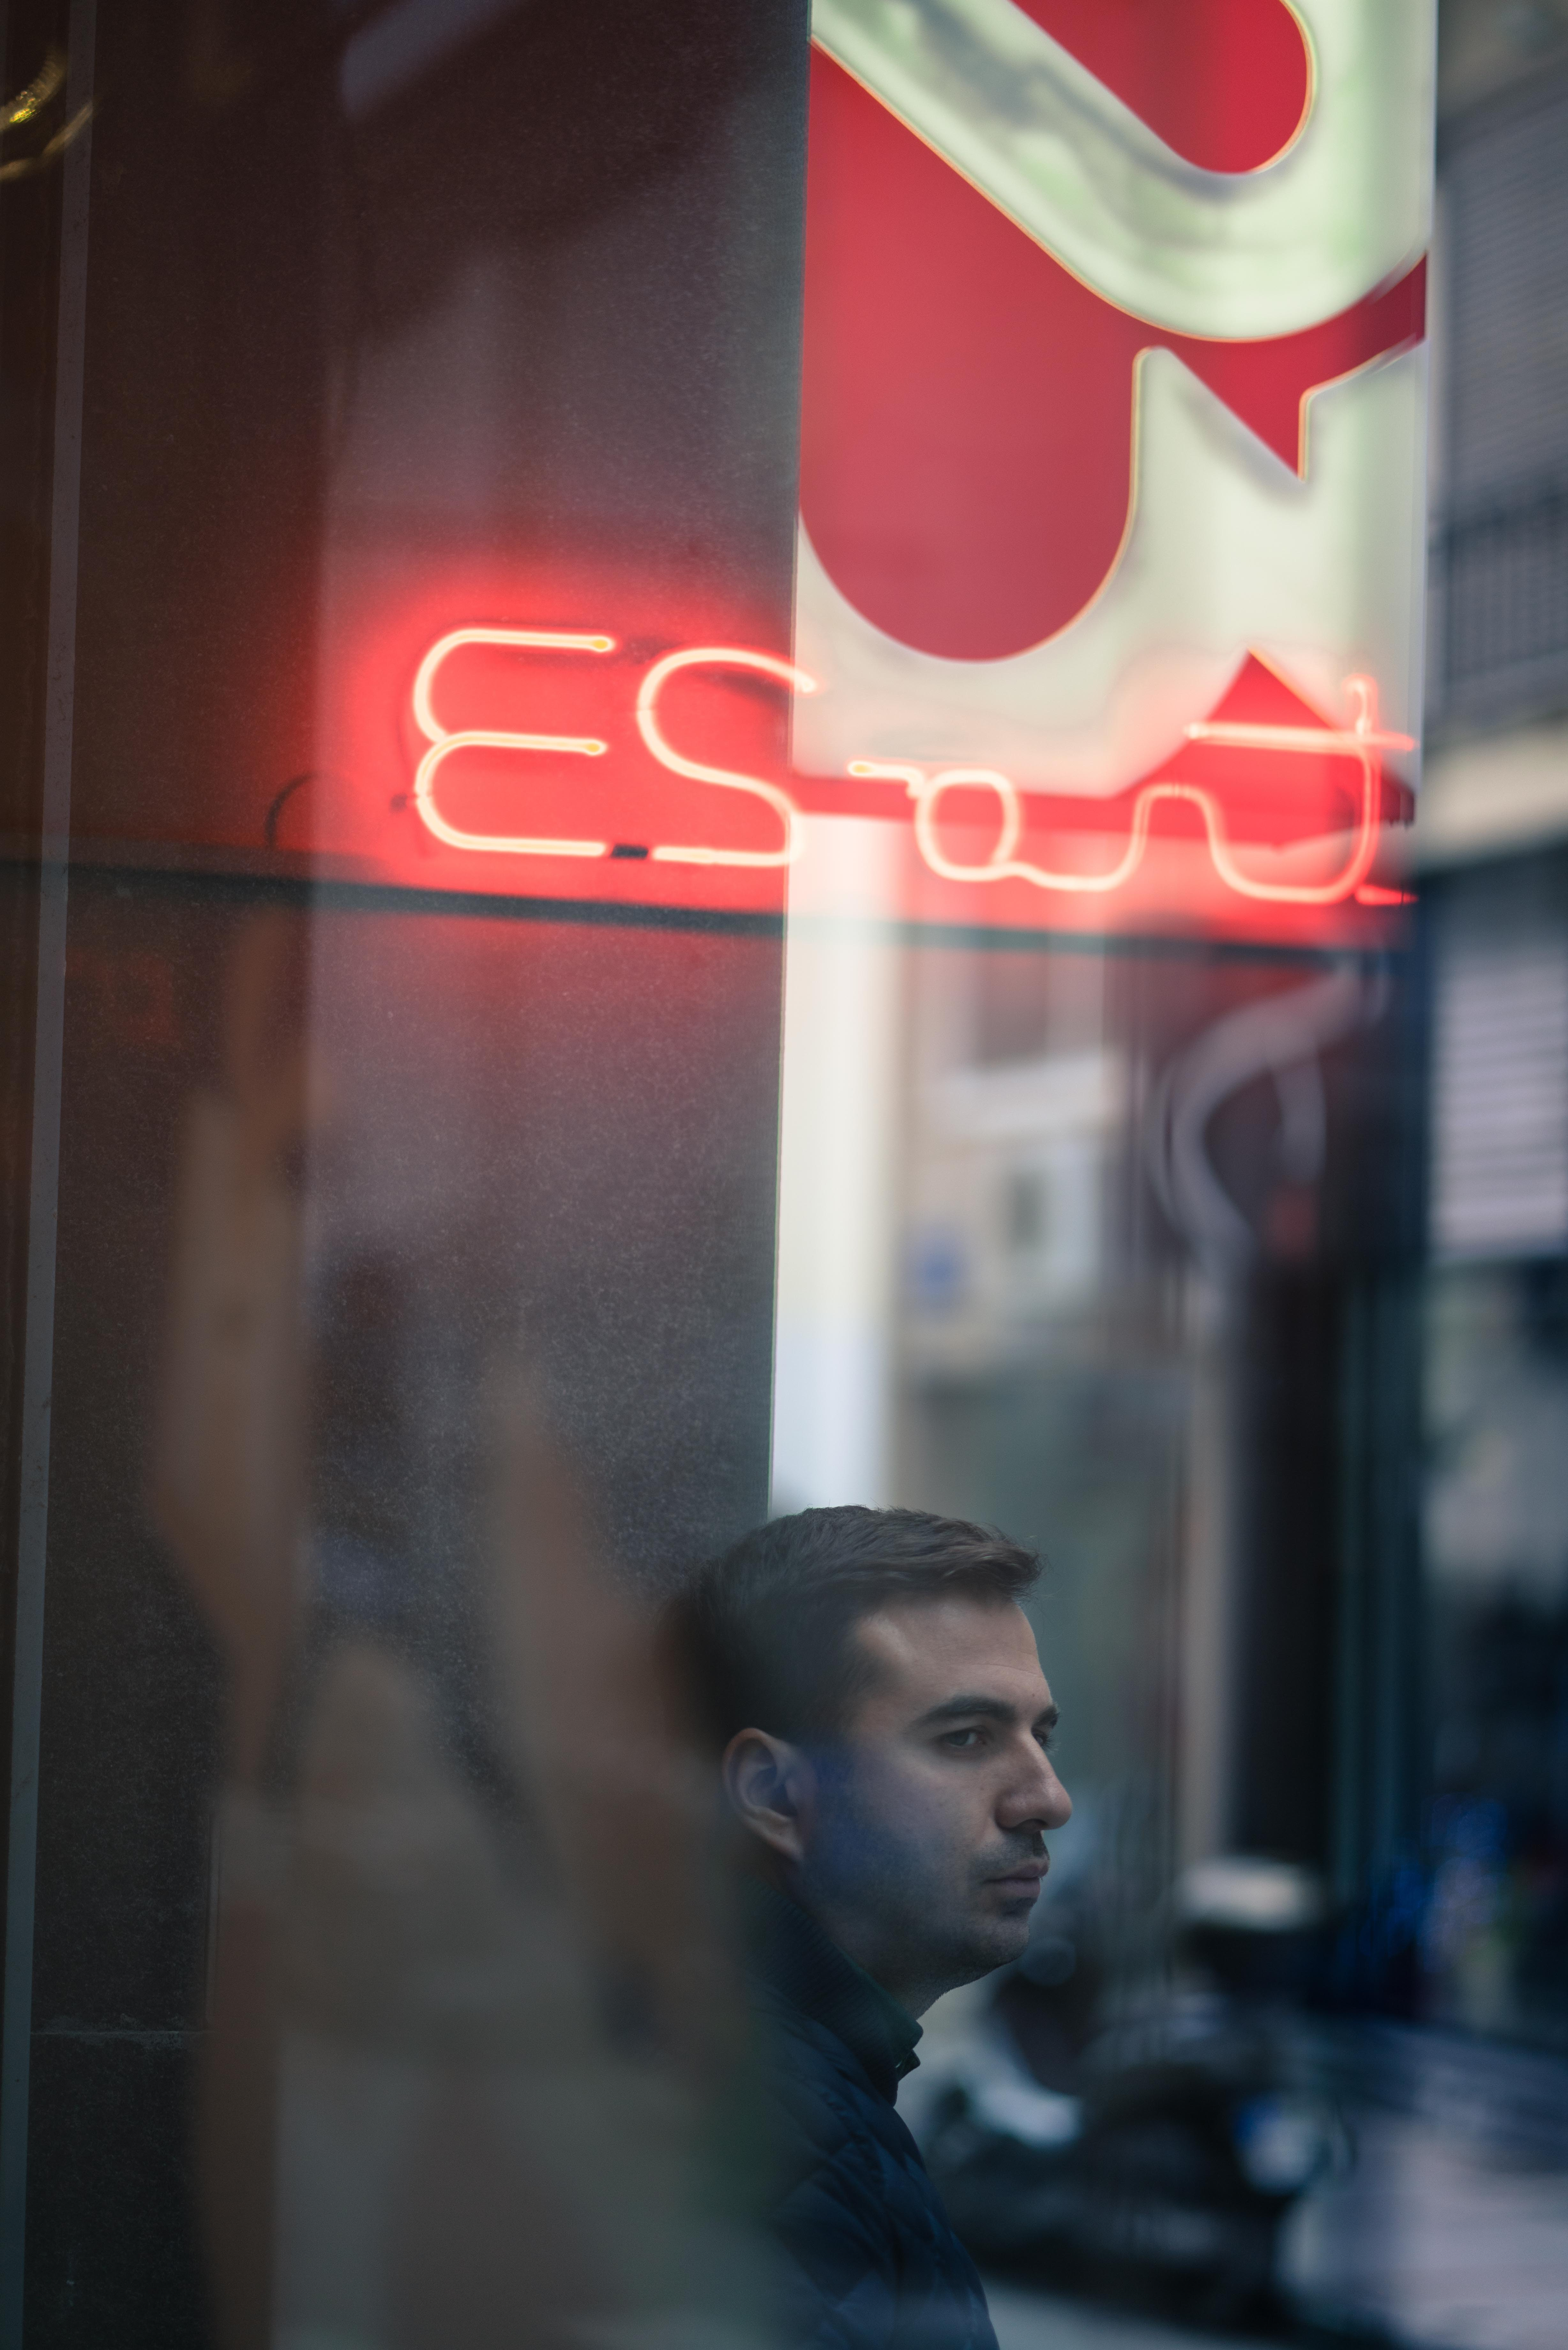 man wearing black jacket standing near signage and building at daytime